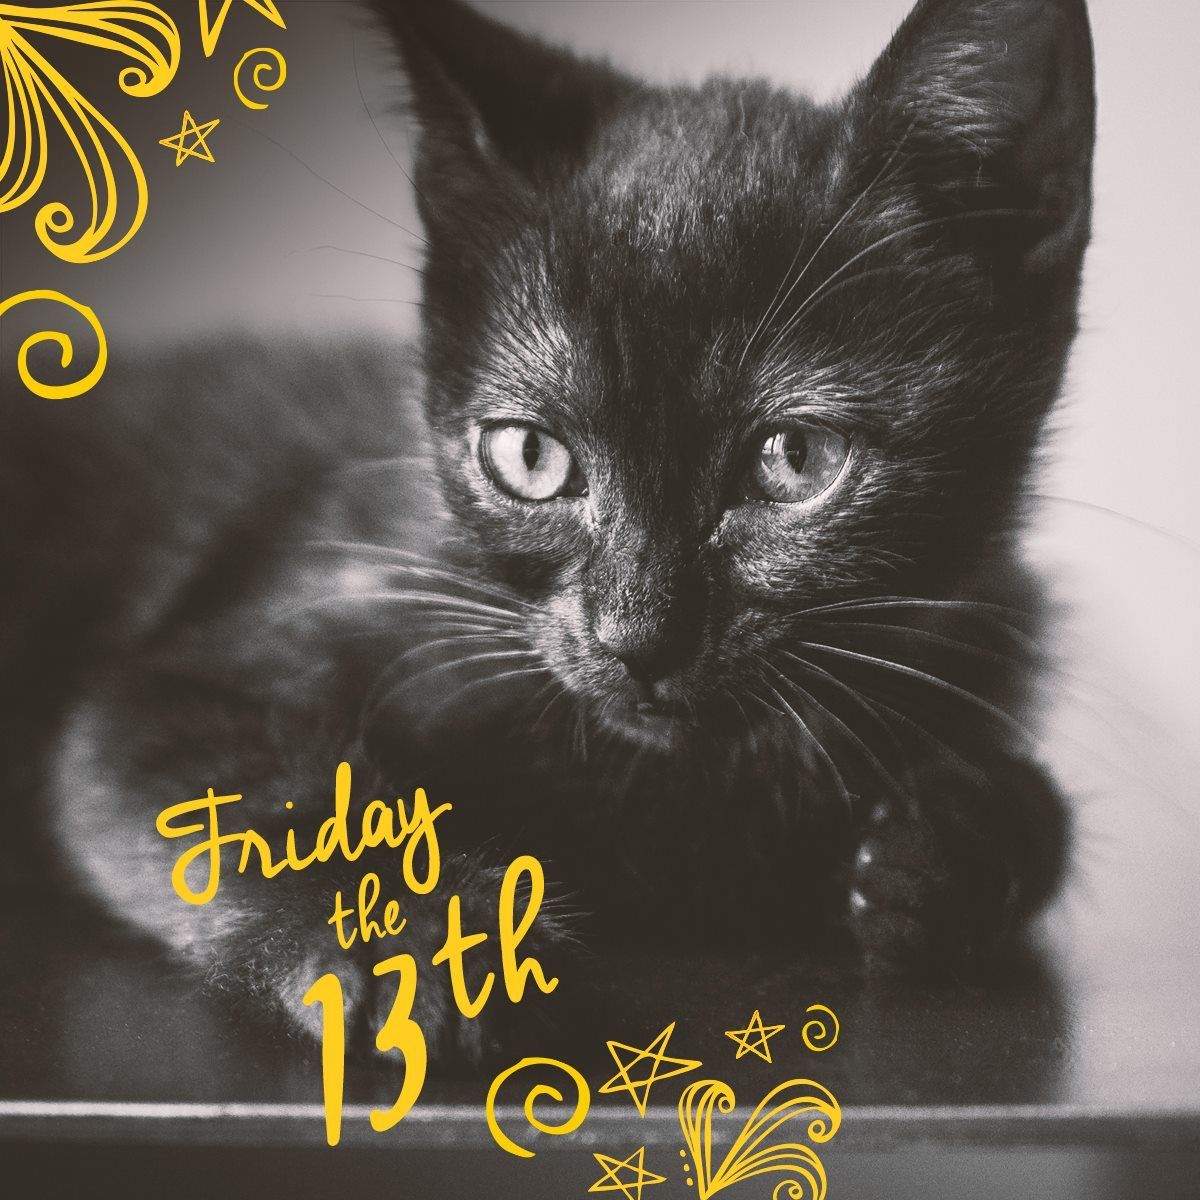 Pin by Lillian Perry on Meow Friday the 13th, Black cat